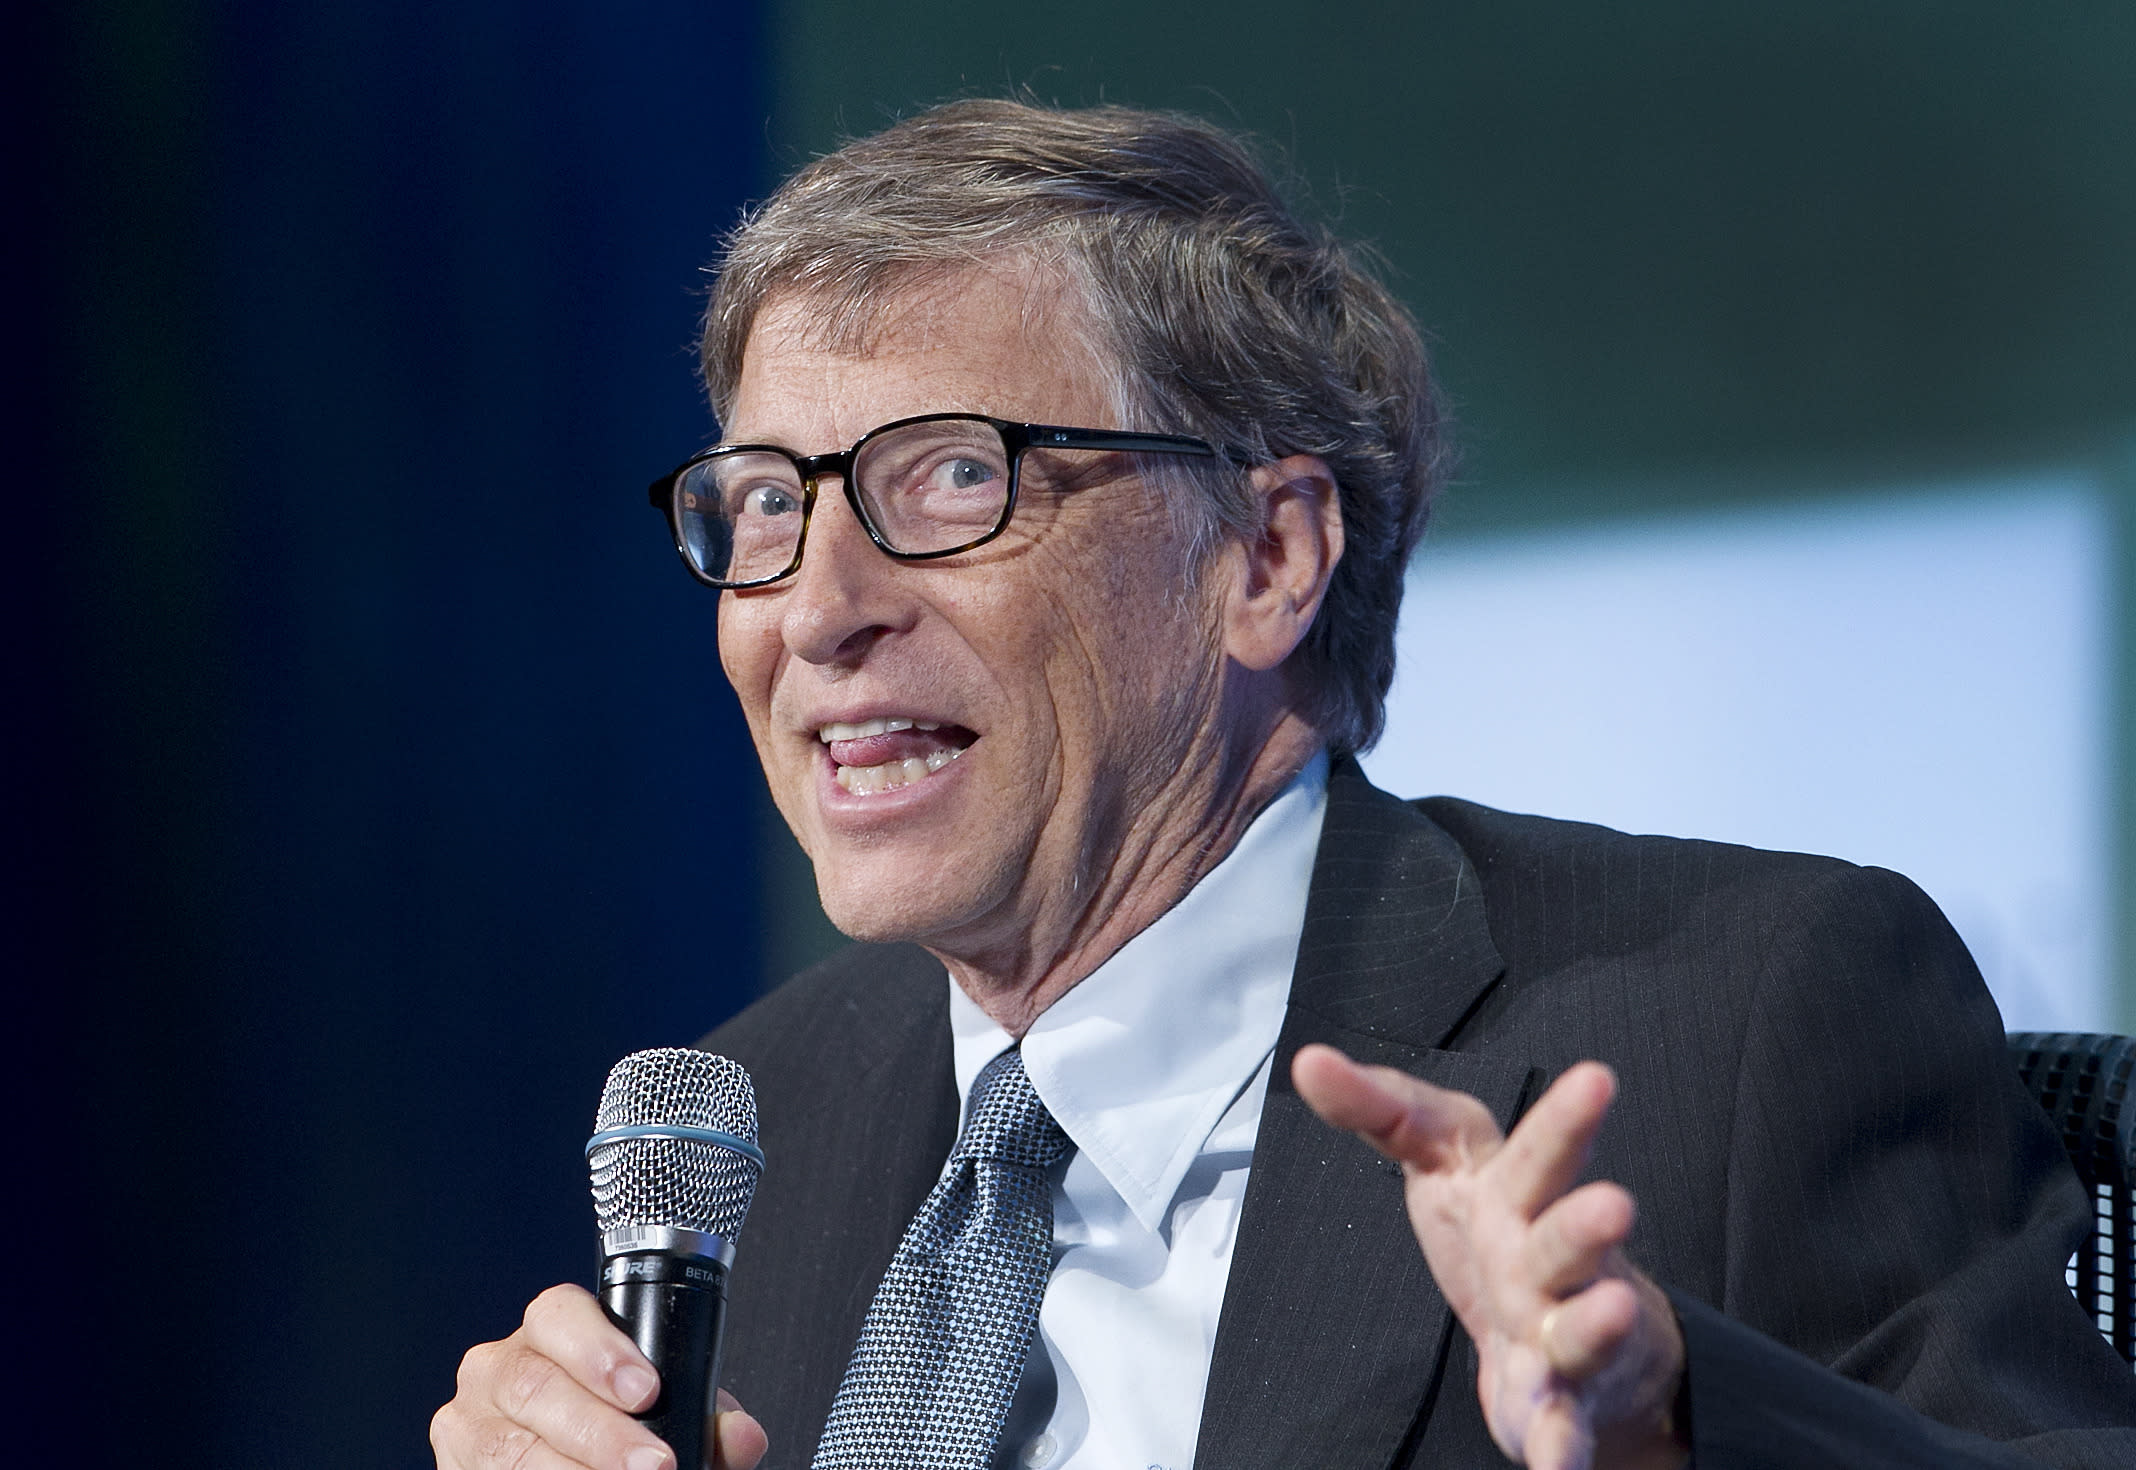 The richest man in the world is Bill Gates, with a fortune of $72.9 billion - up 16.2% in a year. His fortune is all the more impressive when you add in the fact that he has given away $28 billion - most of it to the Bill & Melinda Gates Foundation. Microsoft is now just a fifth of his fortune.